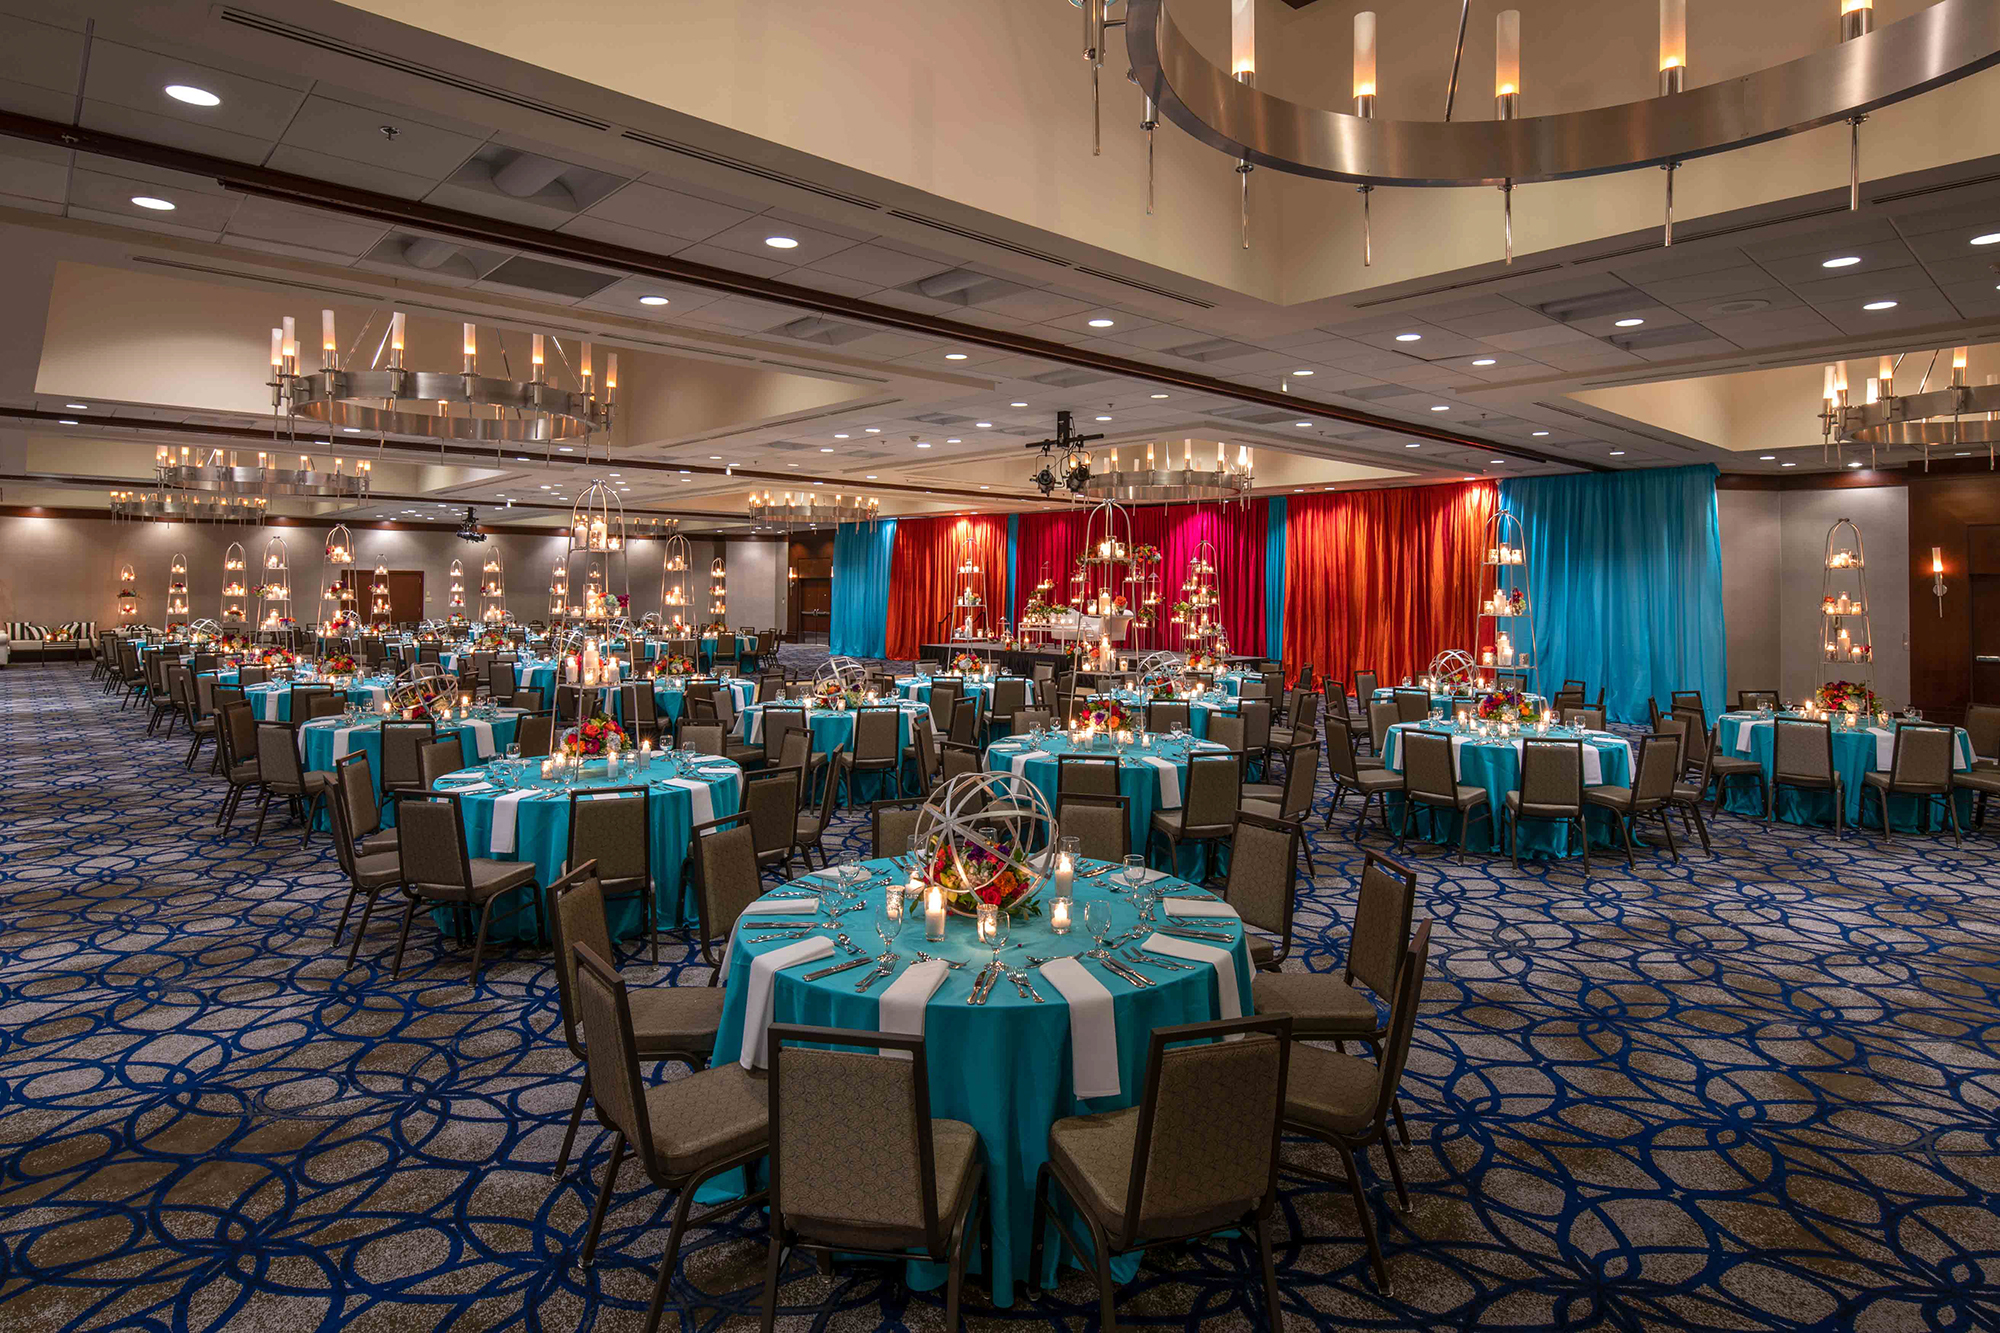 Hilton_Bellevue_Meeting_Grand_Ballroom_Wedding-0001.jpg